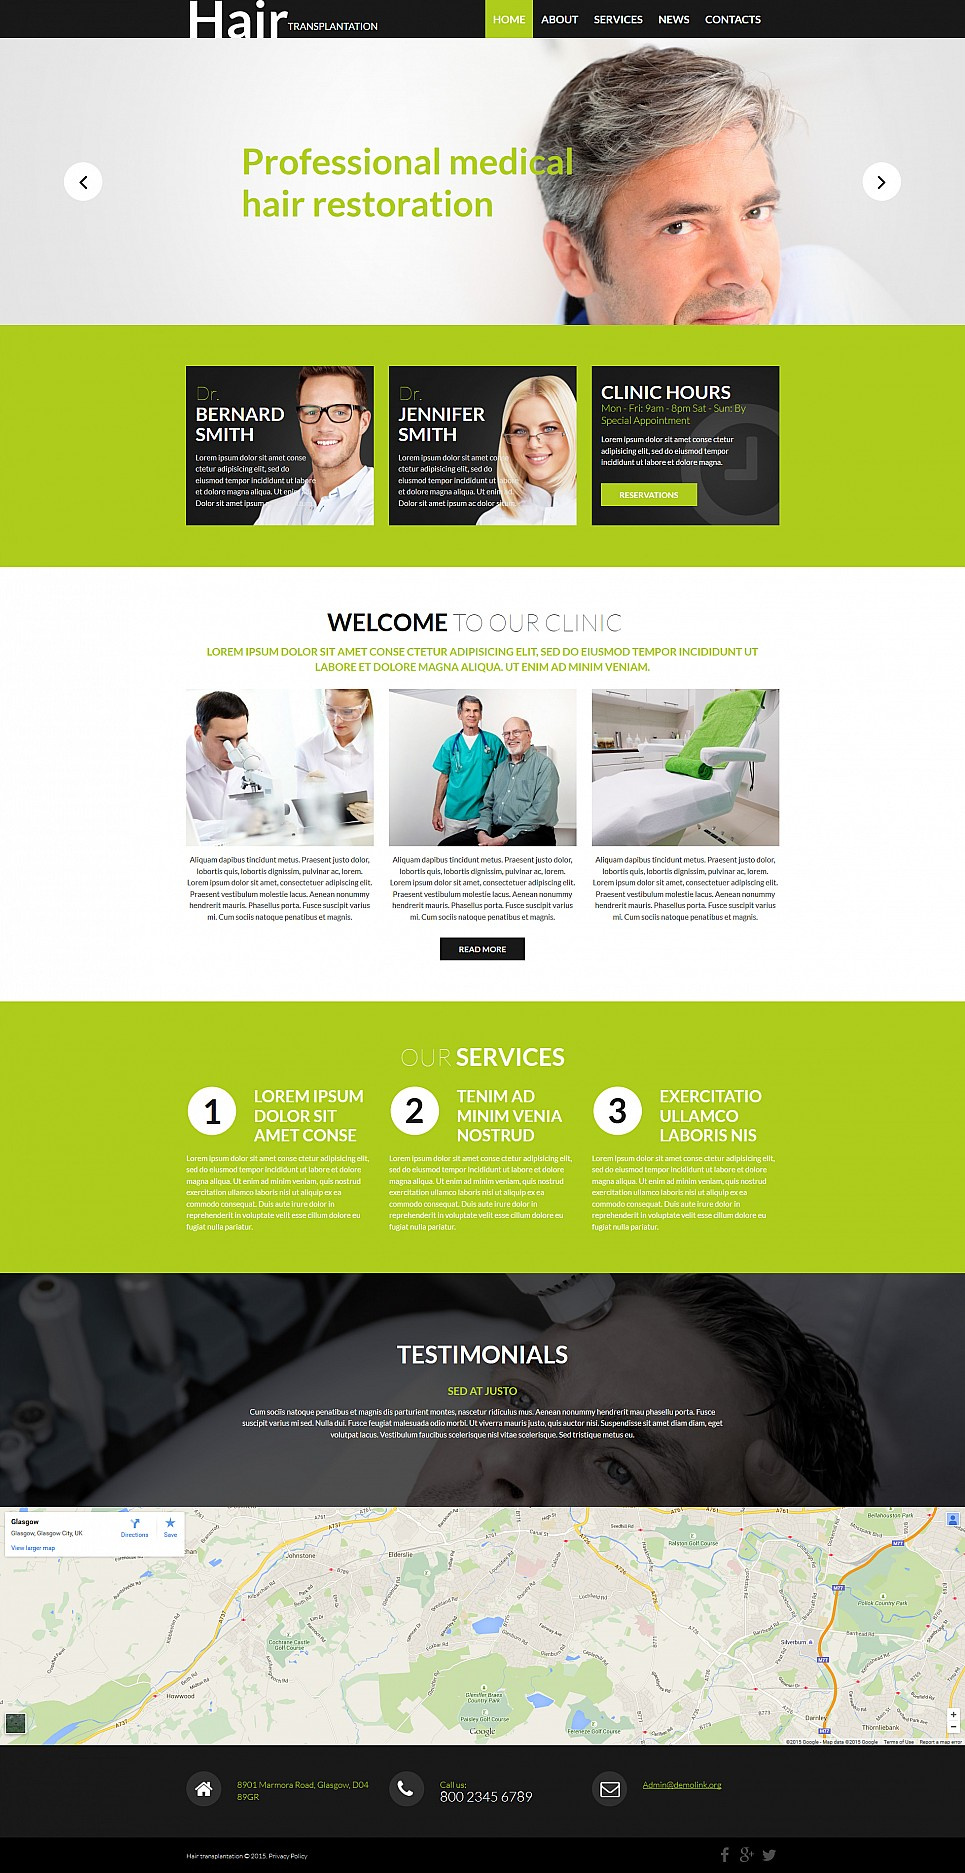 Hair Regrowth Website Template - image